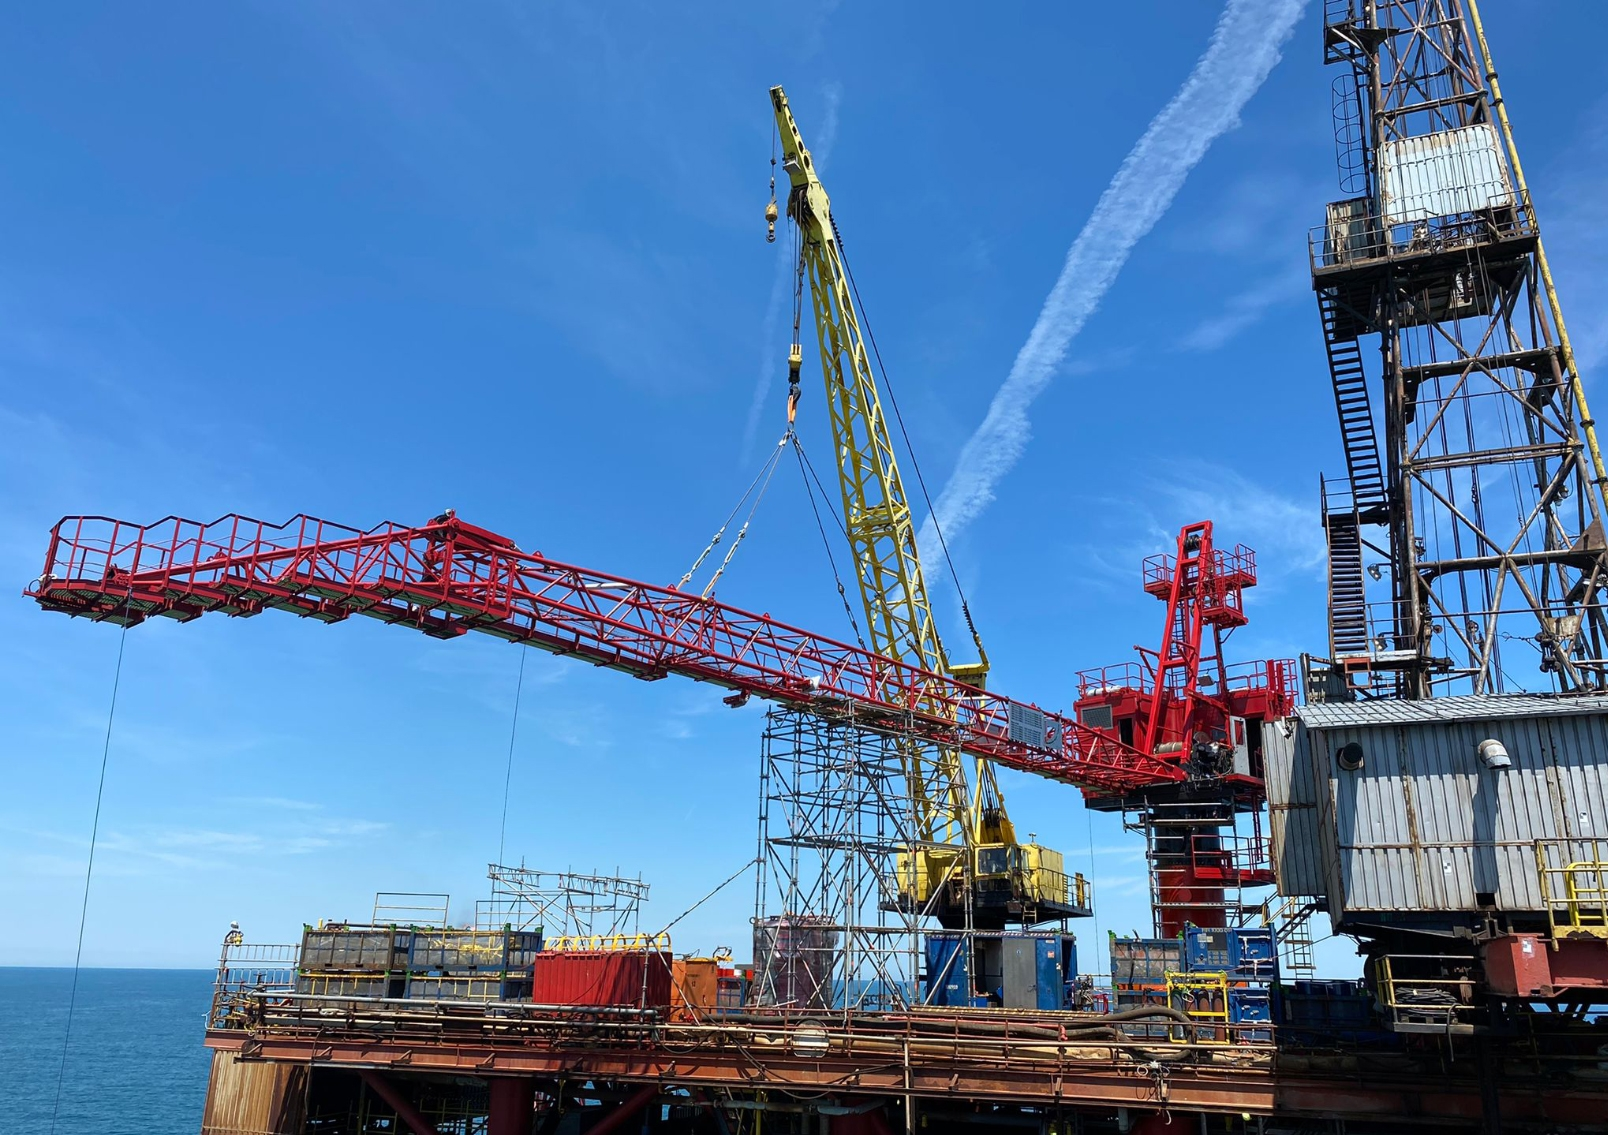 Three years LTI-Free on a complex engineering and construction project offshore is no accident